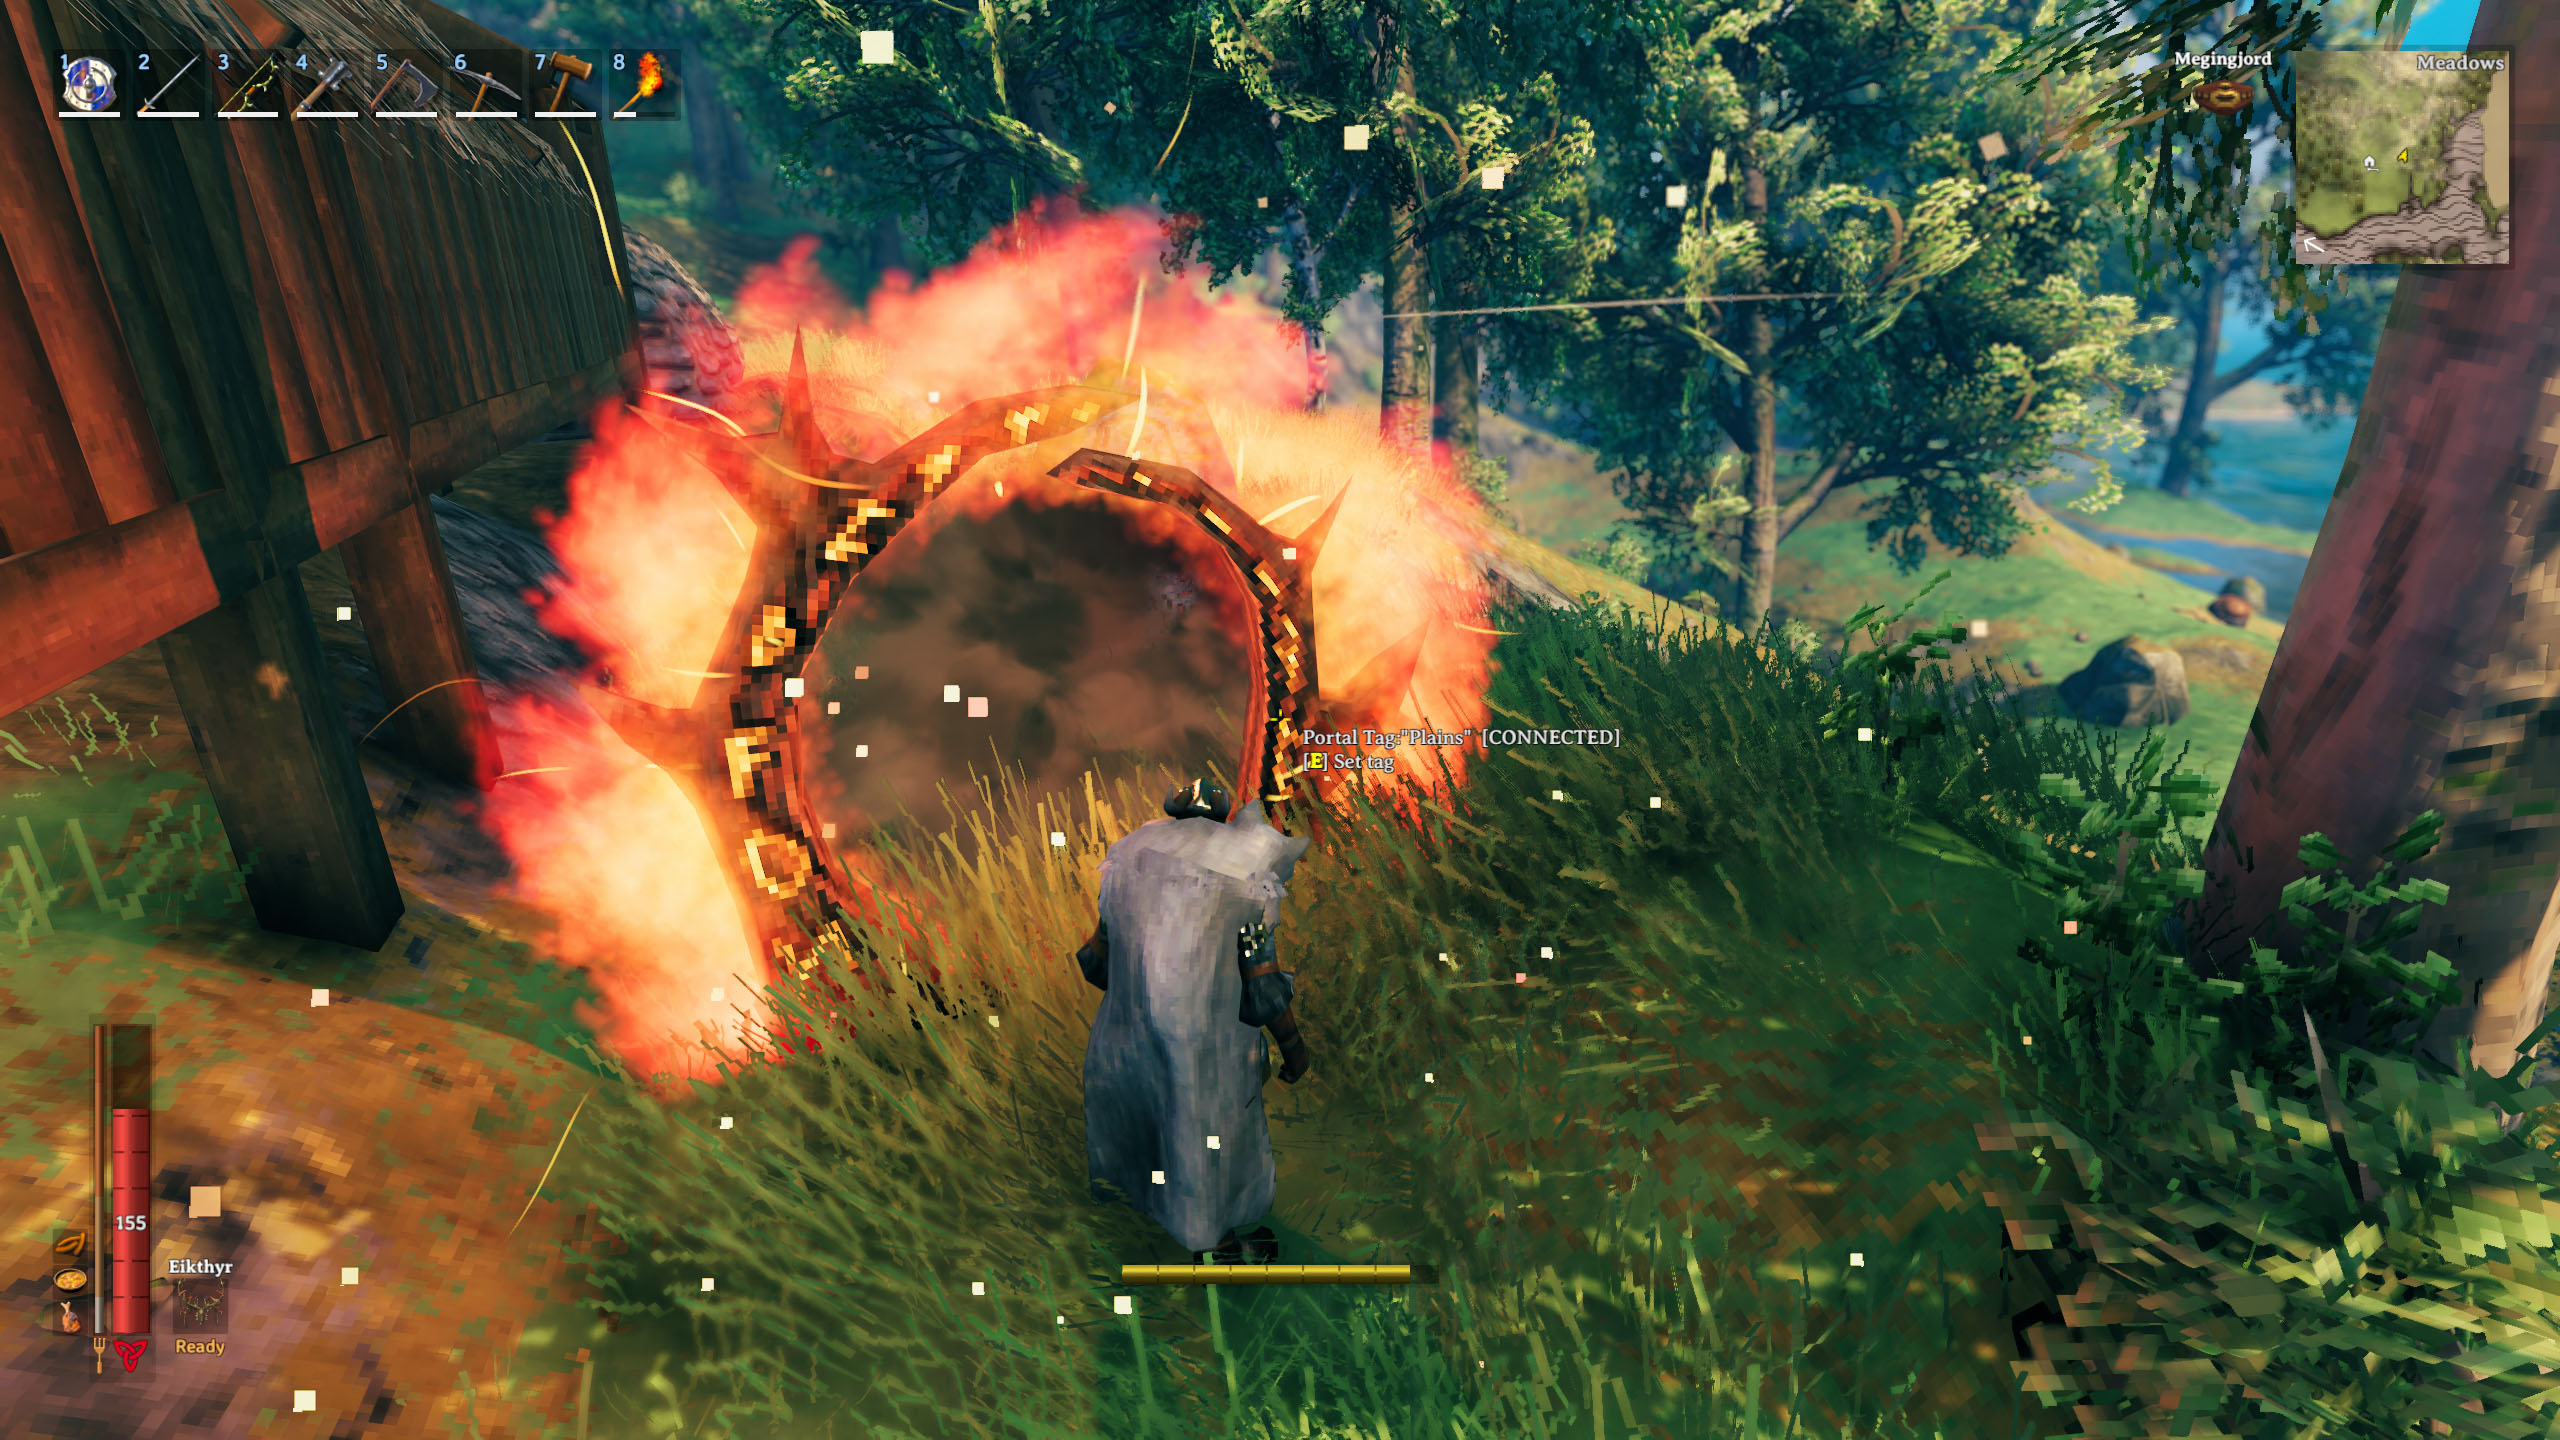 How to build a Portal and fast travel - Valheim